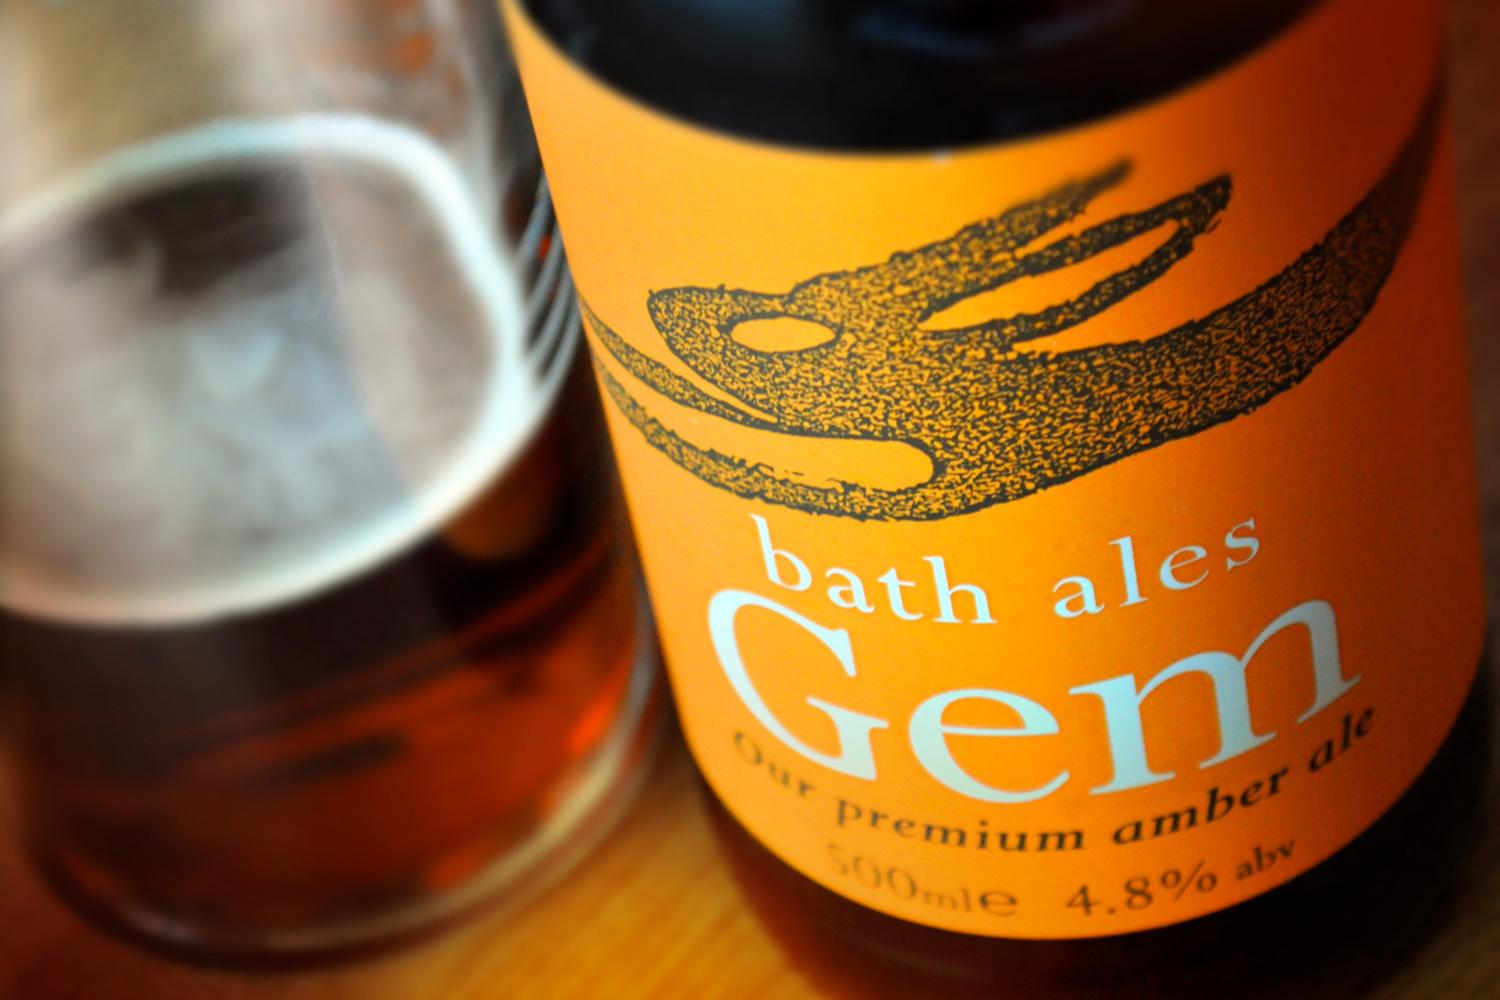 Bath Ales Gem bottle